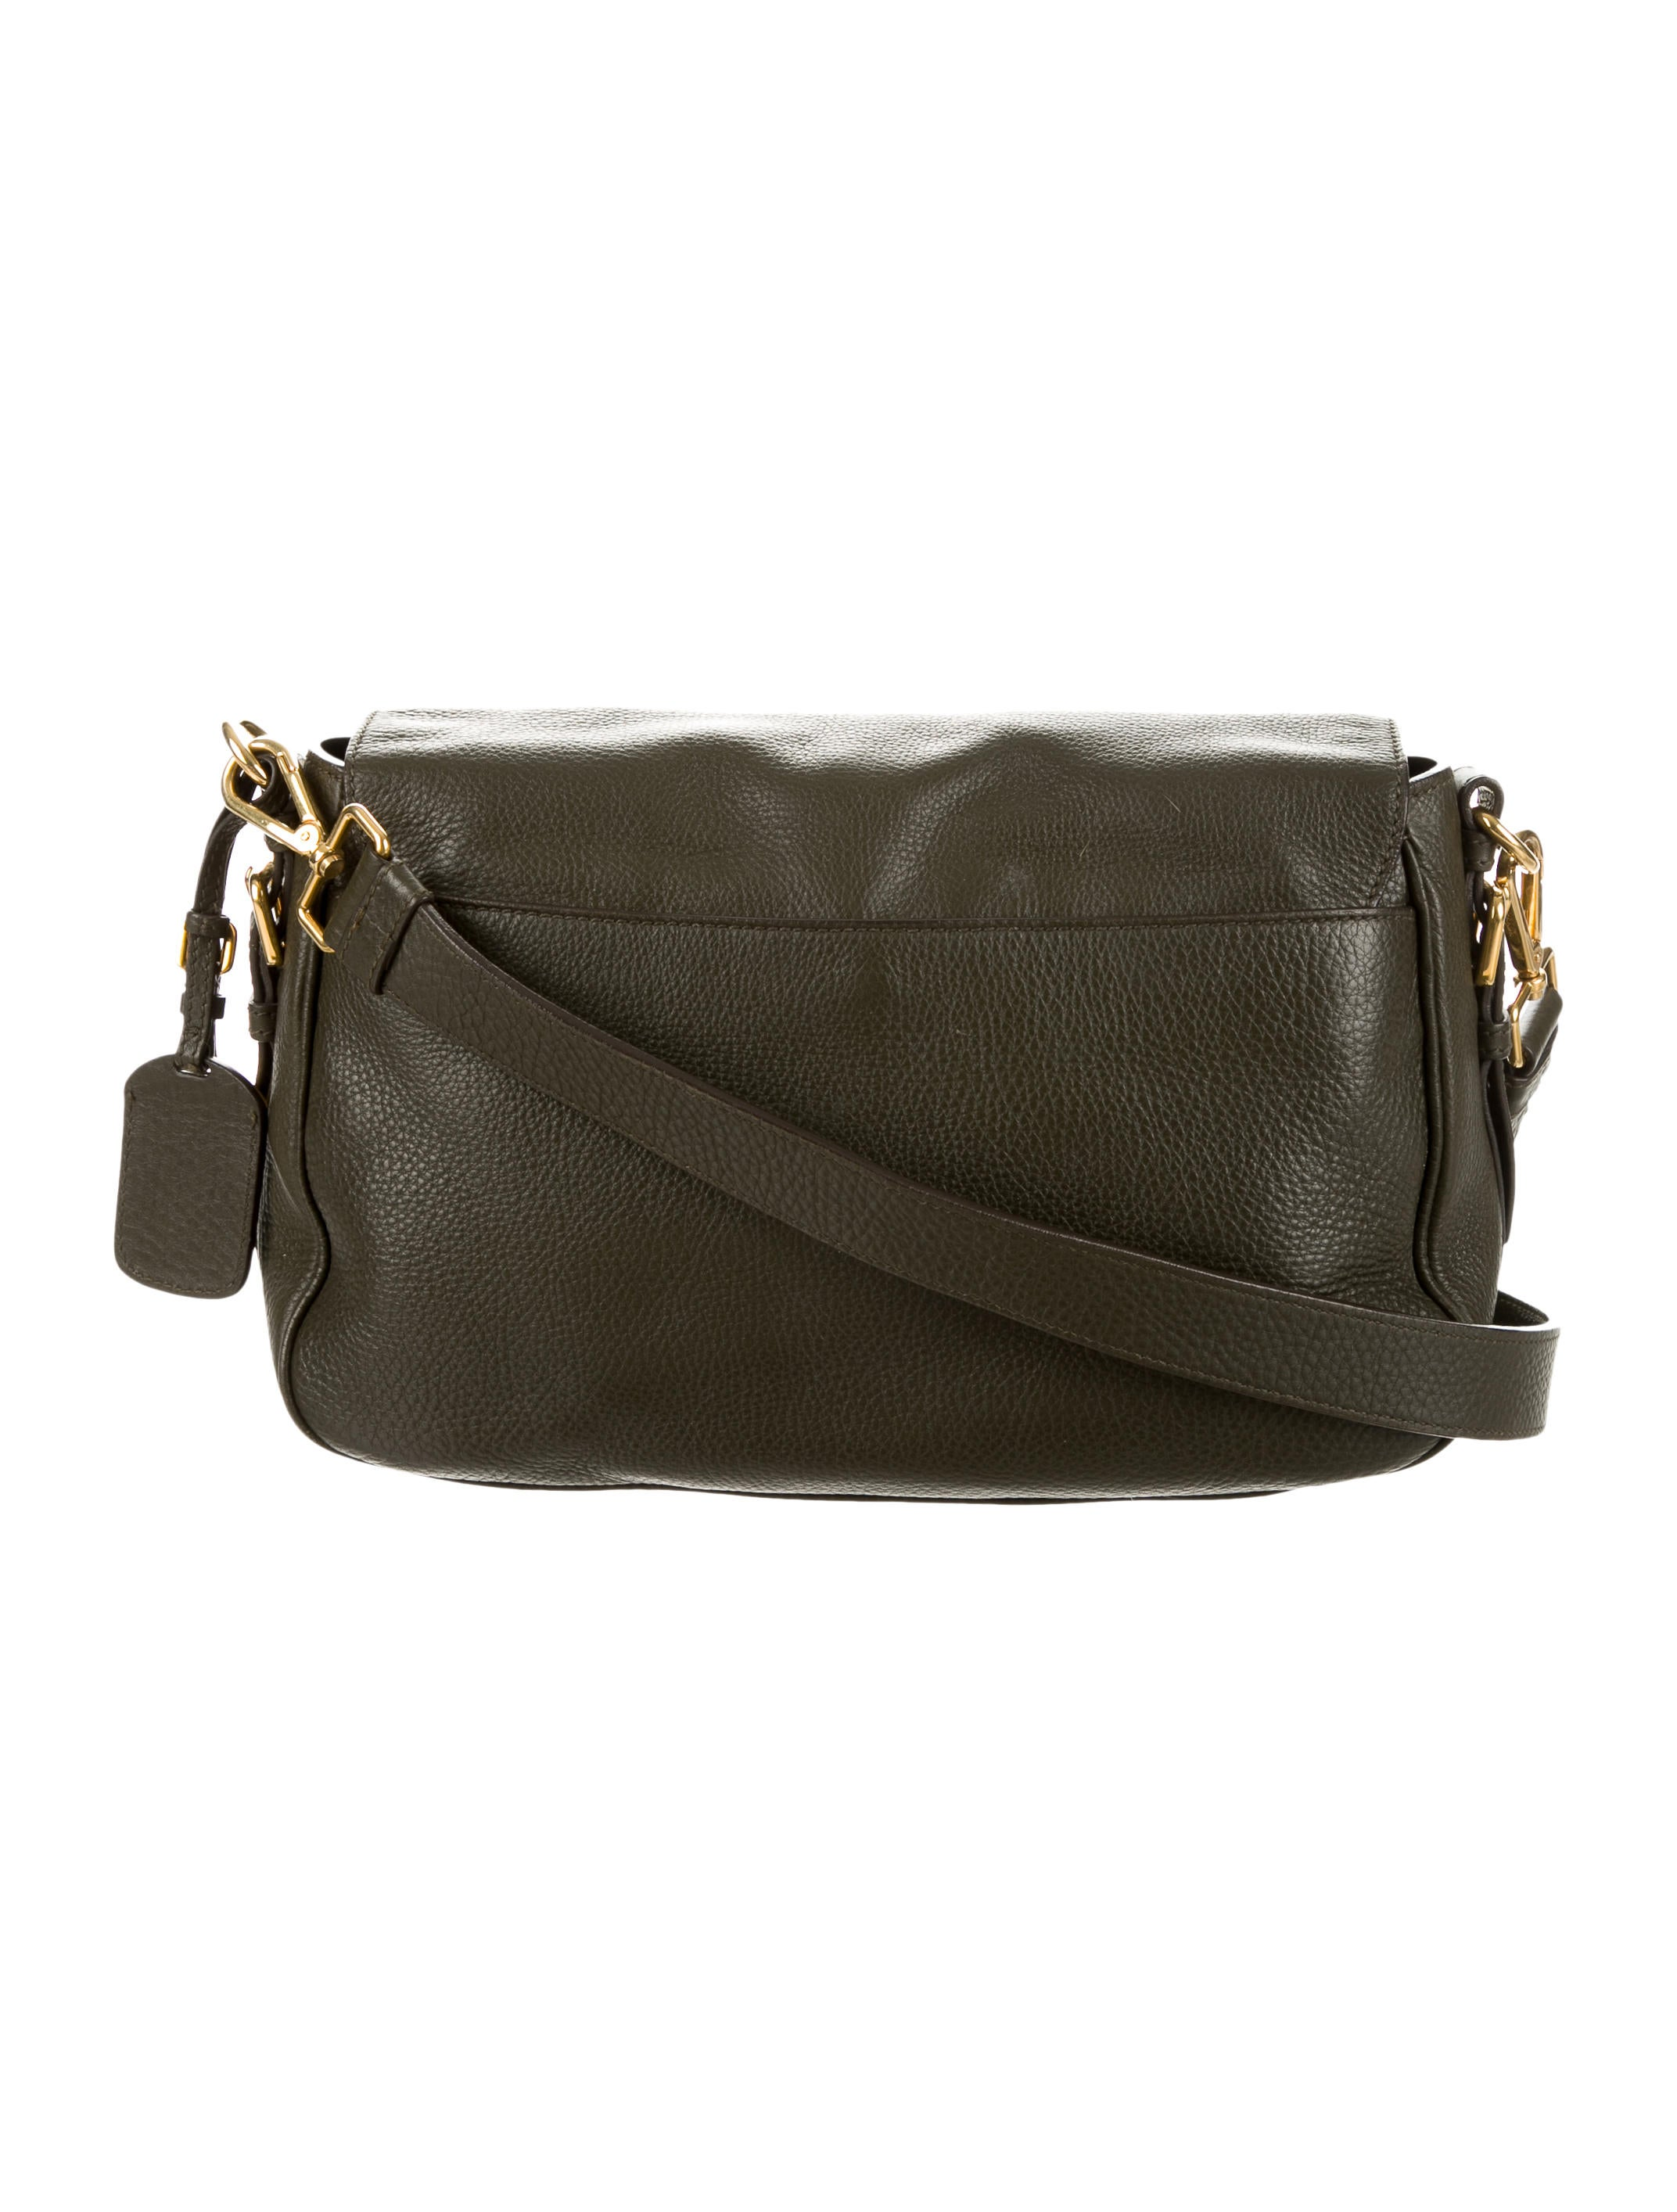 e57480e08ef9 Prada Vitello Daino Messenger Bag | Stanford Center for Opportunity ...